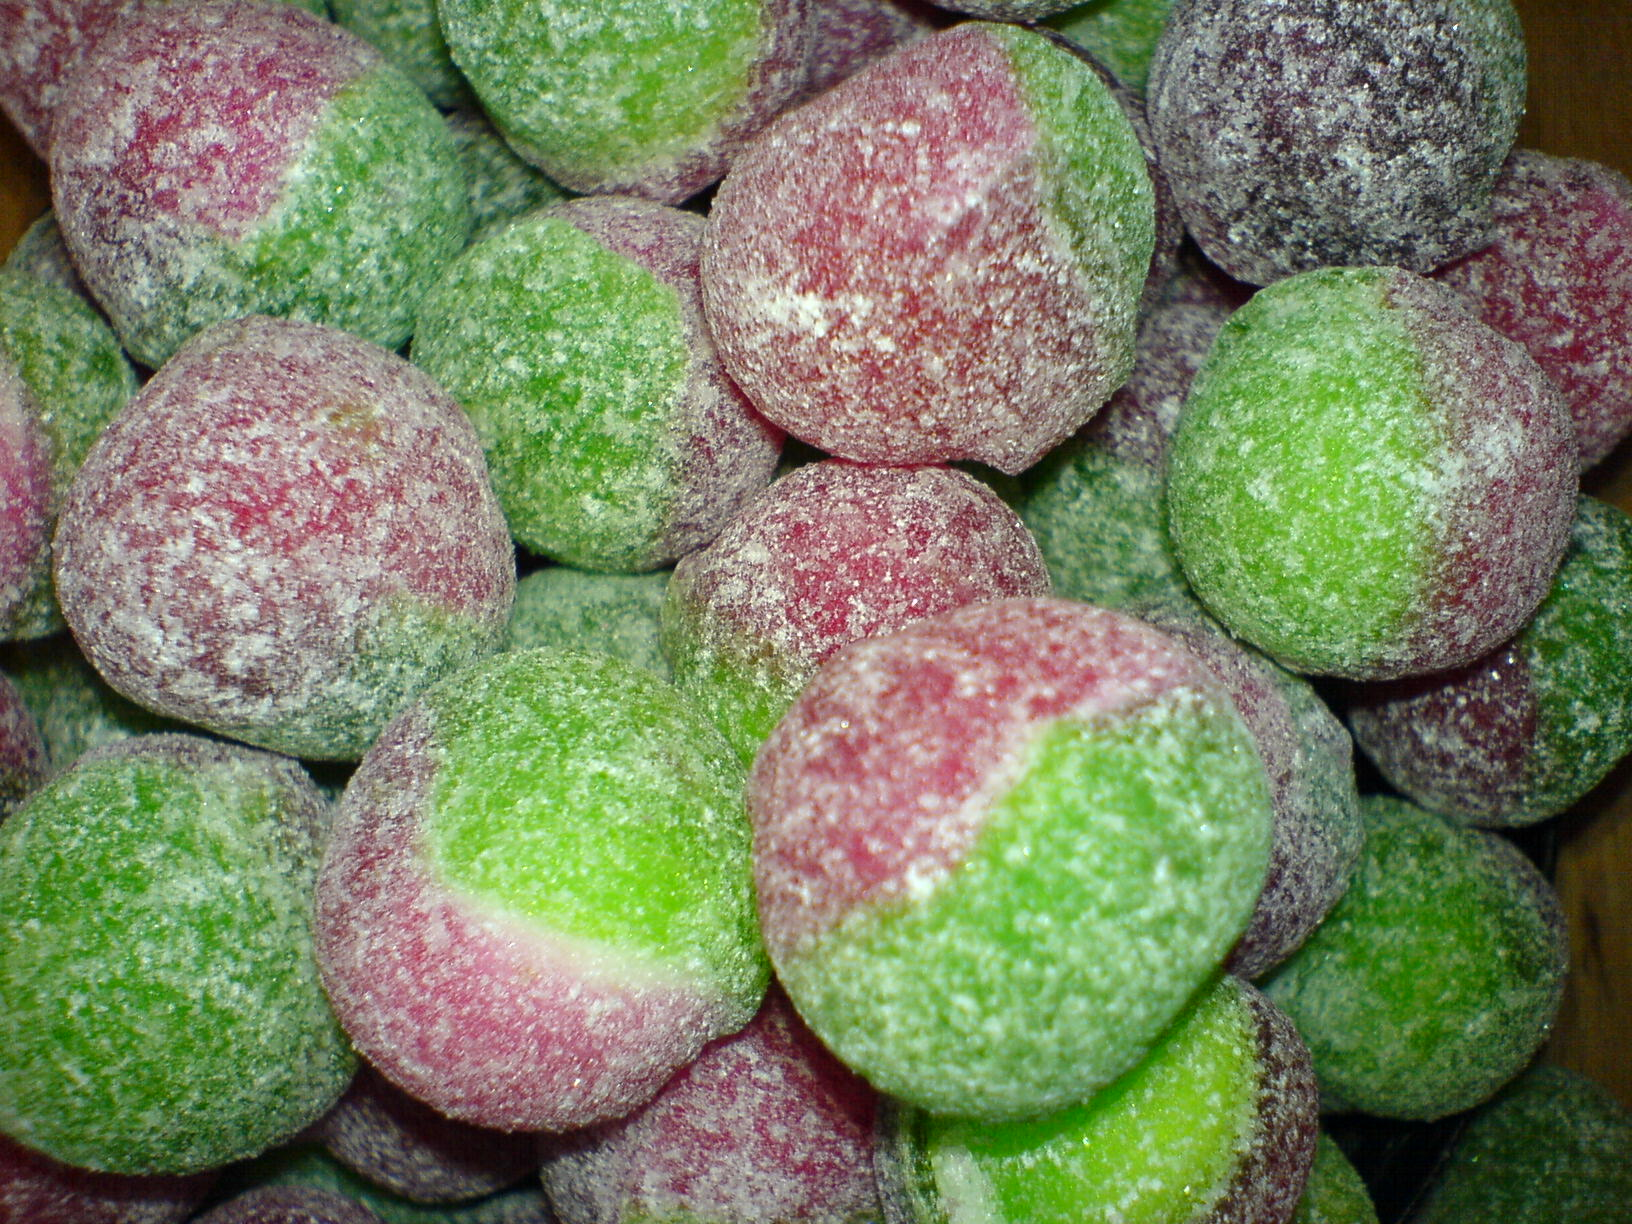 sour candy images sour apples hd wallpaper and background. Black Bedroom Furniture Sets. Home Design Ideas